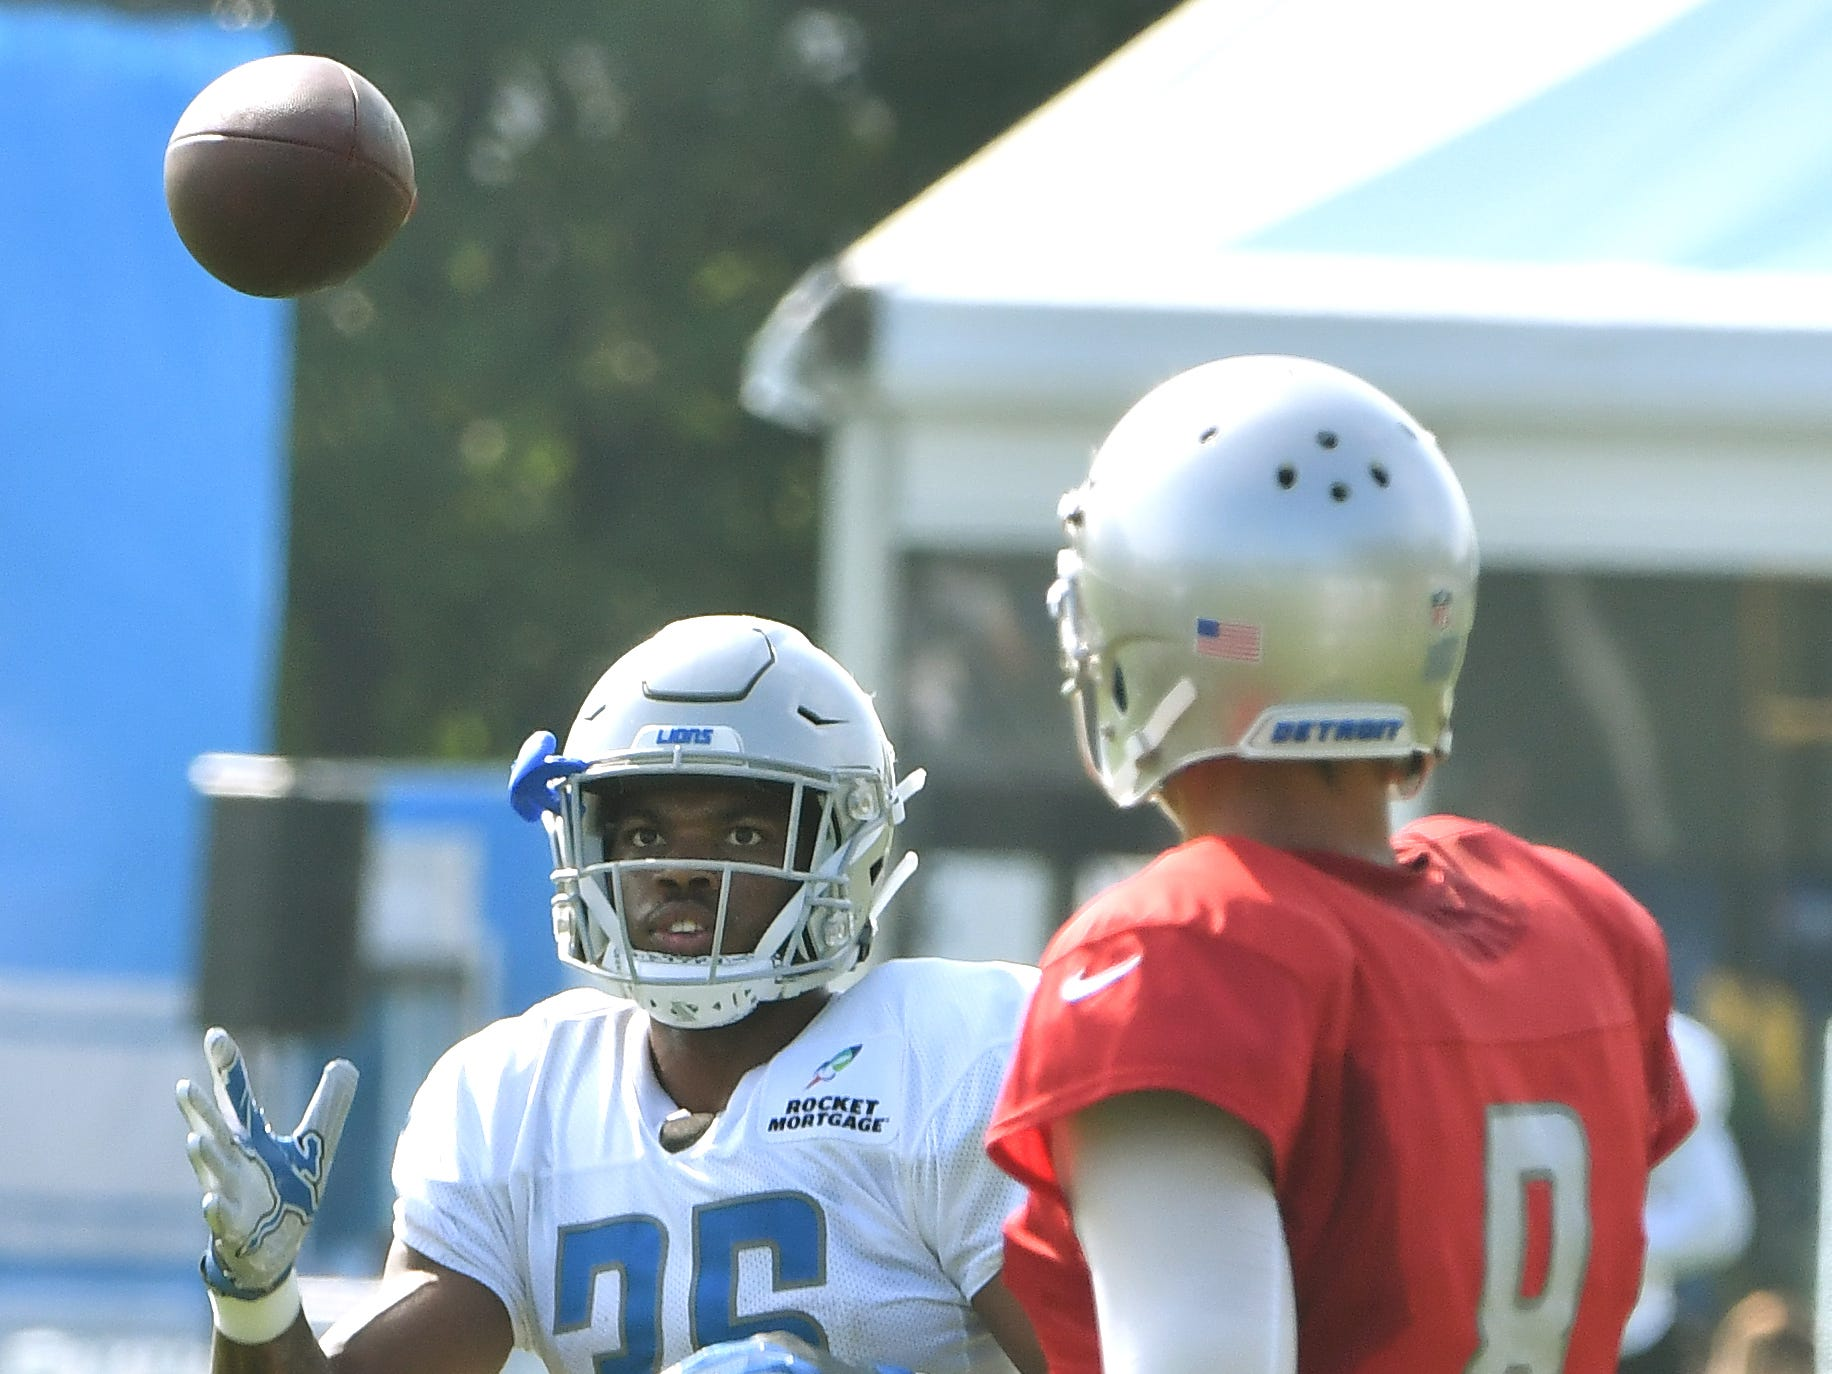 Lions running back Dwayne Washington readies for a reception from quarterback Matt Cassel.